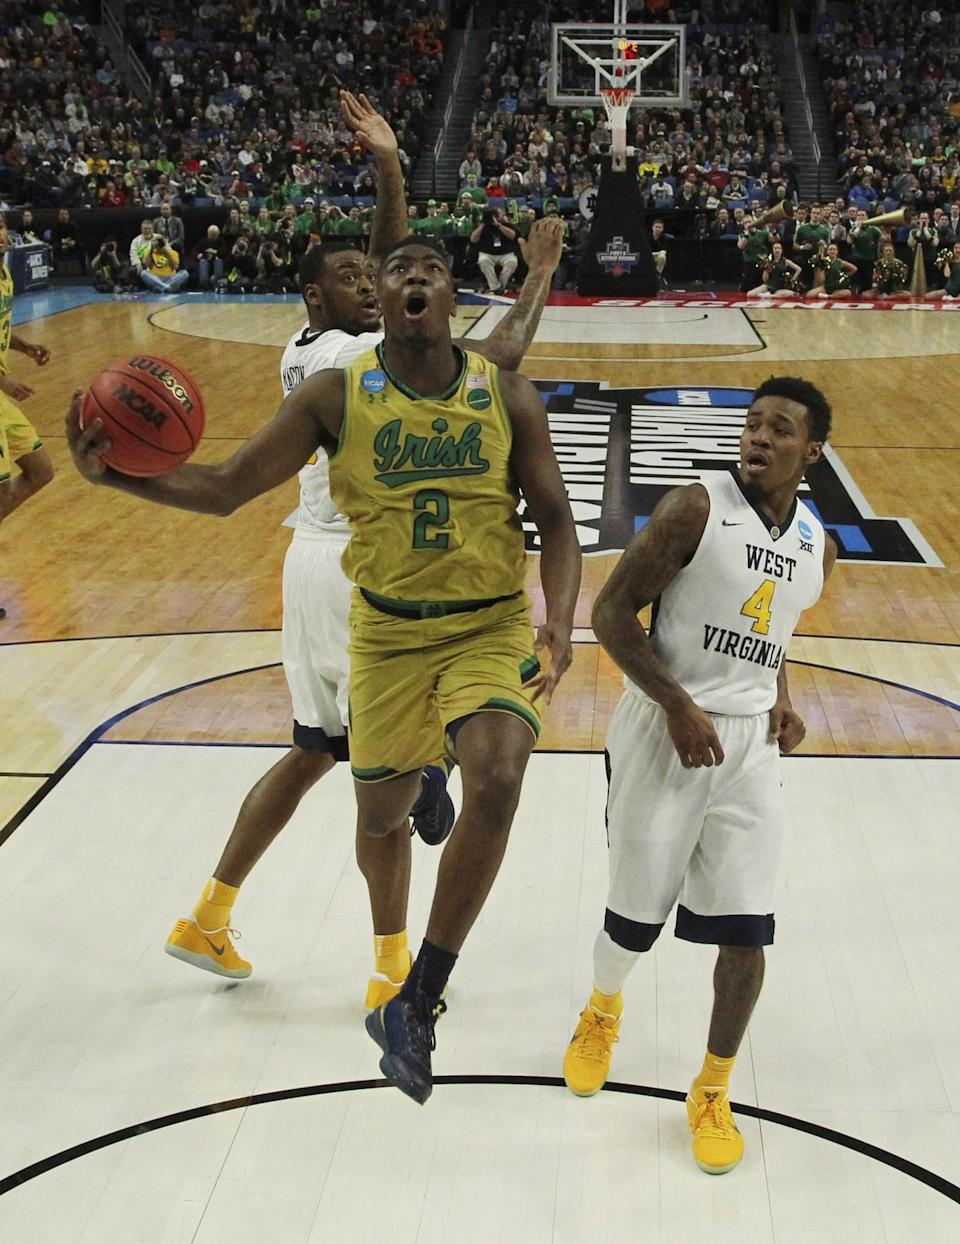 <p>Notre Dame guard Temple Gibbs (2) goes to the basket against West Virginia forward Elijah Macon (45) and guard Daxter Miles Jr. (4) during the first half of a second-round men's college basketball game in the NCAA Tournament, Saturday, March 18, 2017, in Buffalo, N.Y. (AP Photo/Bill Wippert) </p>